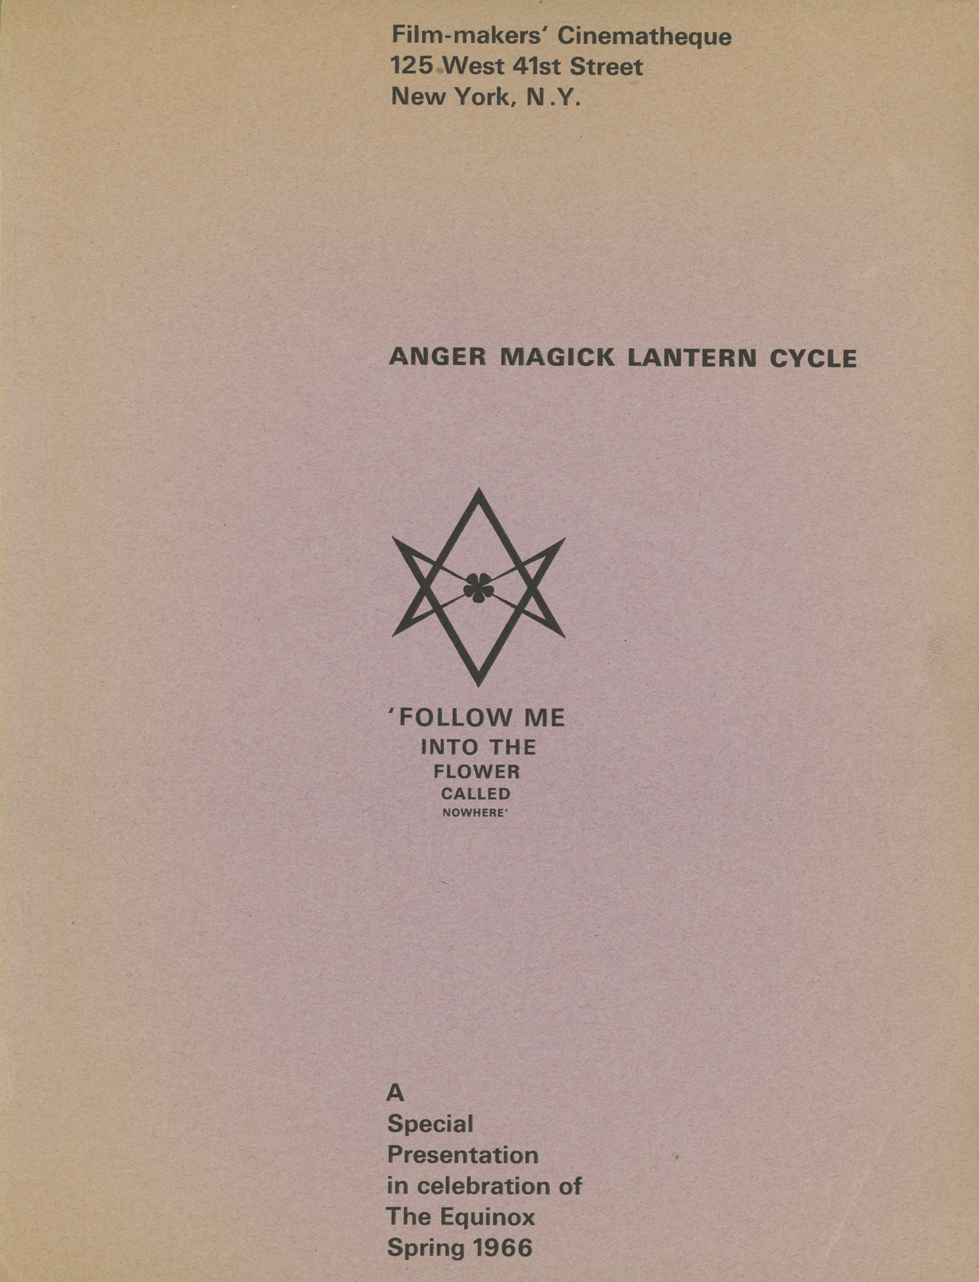 Intro page for Kenneth Anger's 1966 Magick Lantern Cycle screening